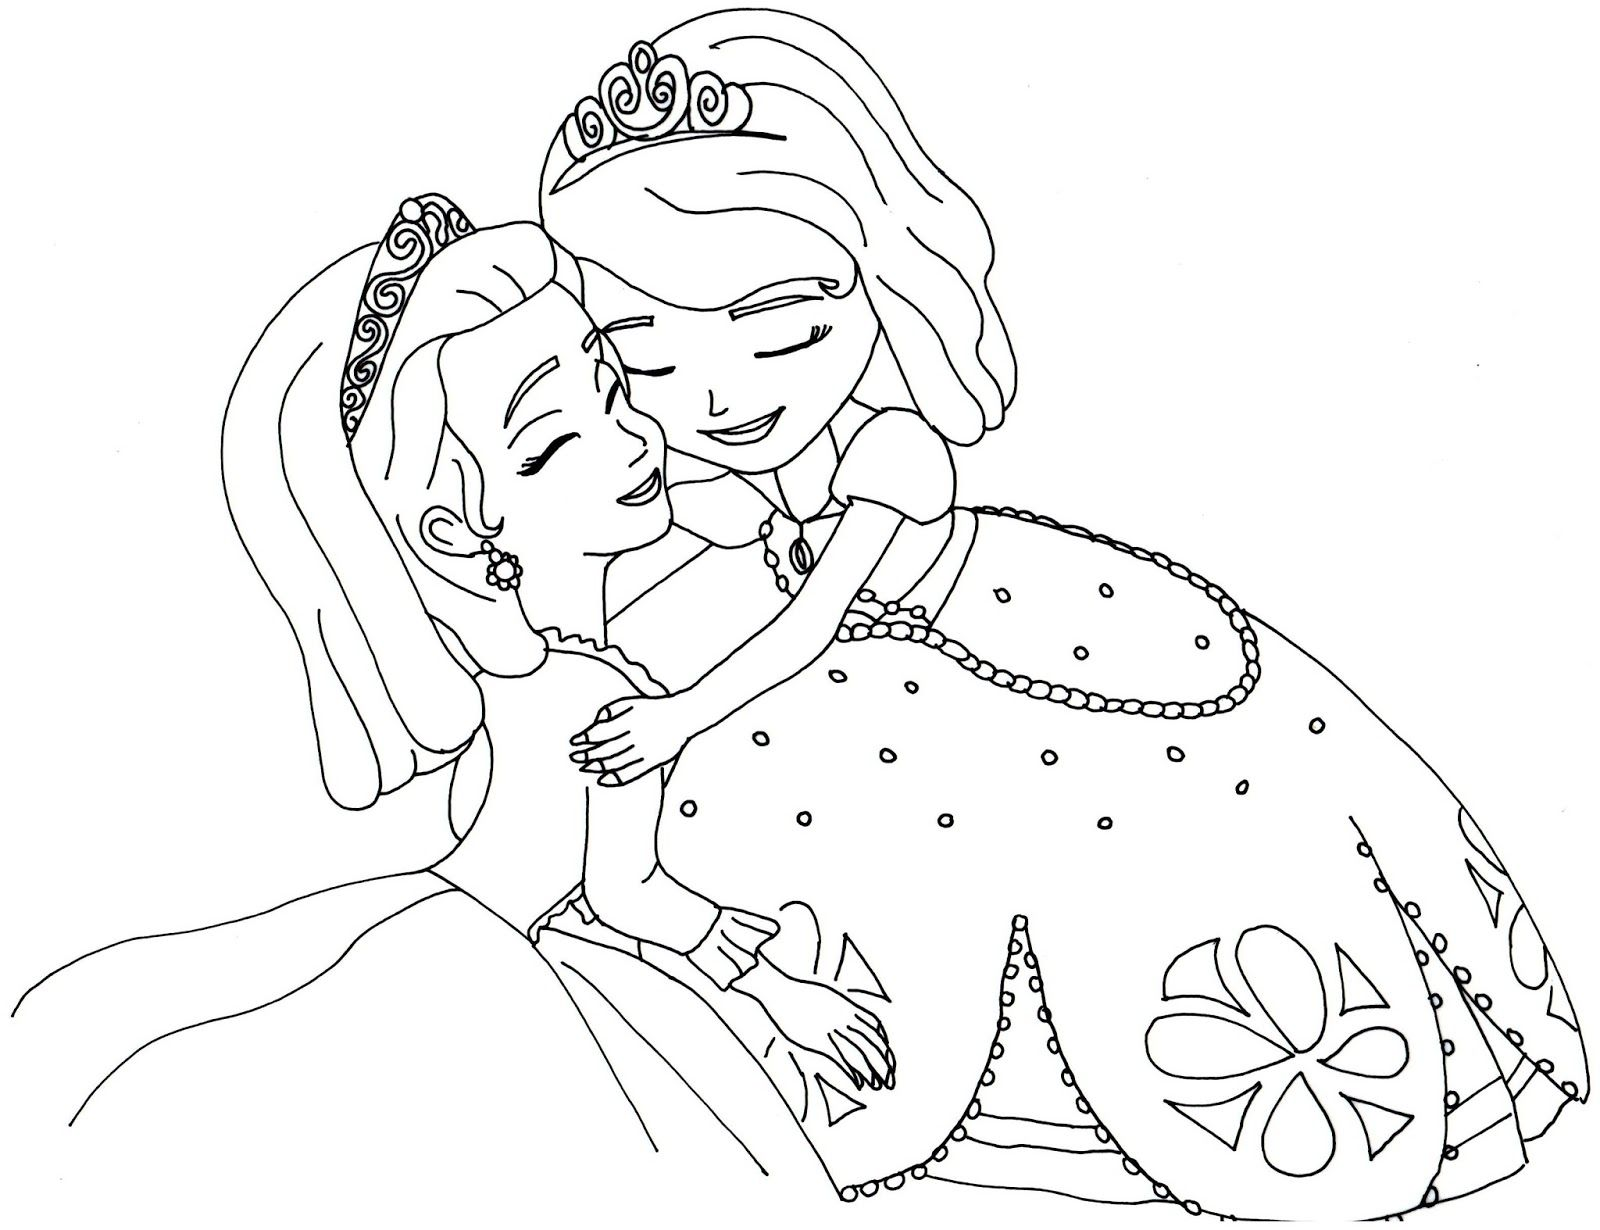 Sofia The First Coloring Pages Sofia And Amber Hugged Free Coloring Page Princess Coloring Pages Disney Princess Coloring Pages Mermaid Coloring Pages